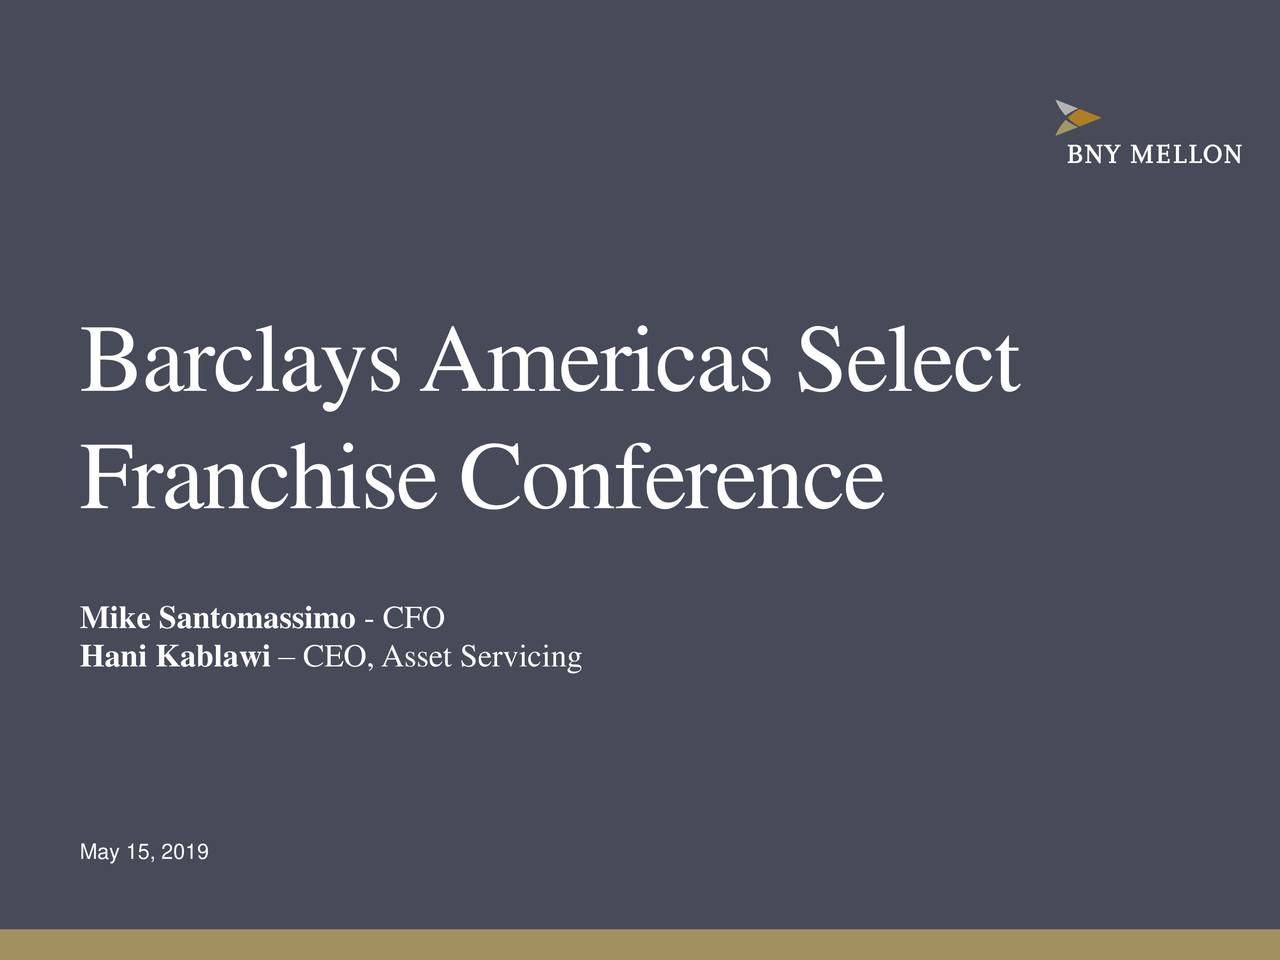 Franchise Conference Mike Santomassimo - CFO Hani Kablawi – CEO,Asset Servicing May 15, 2019 1|2019 Barclays Americas Select Franchise Conference